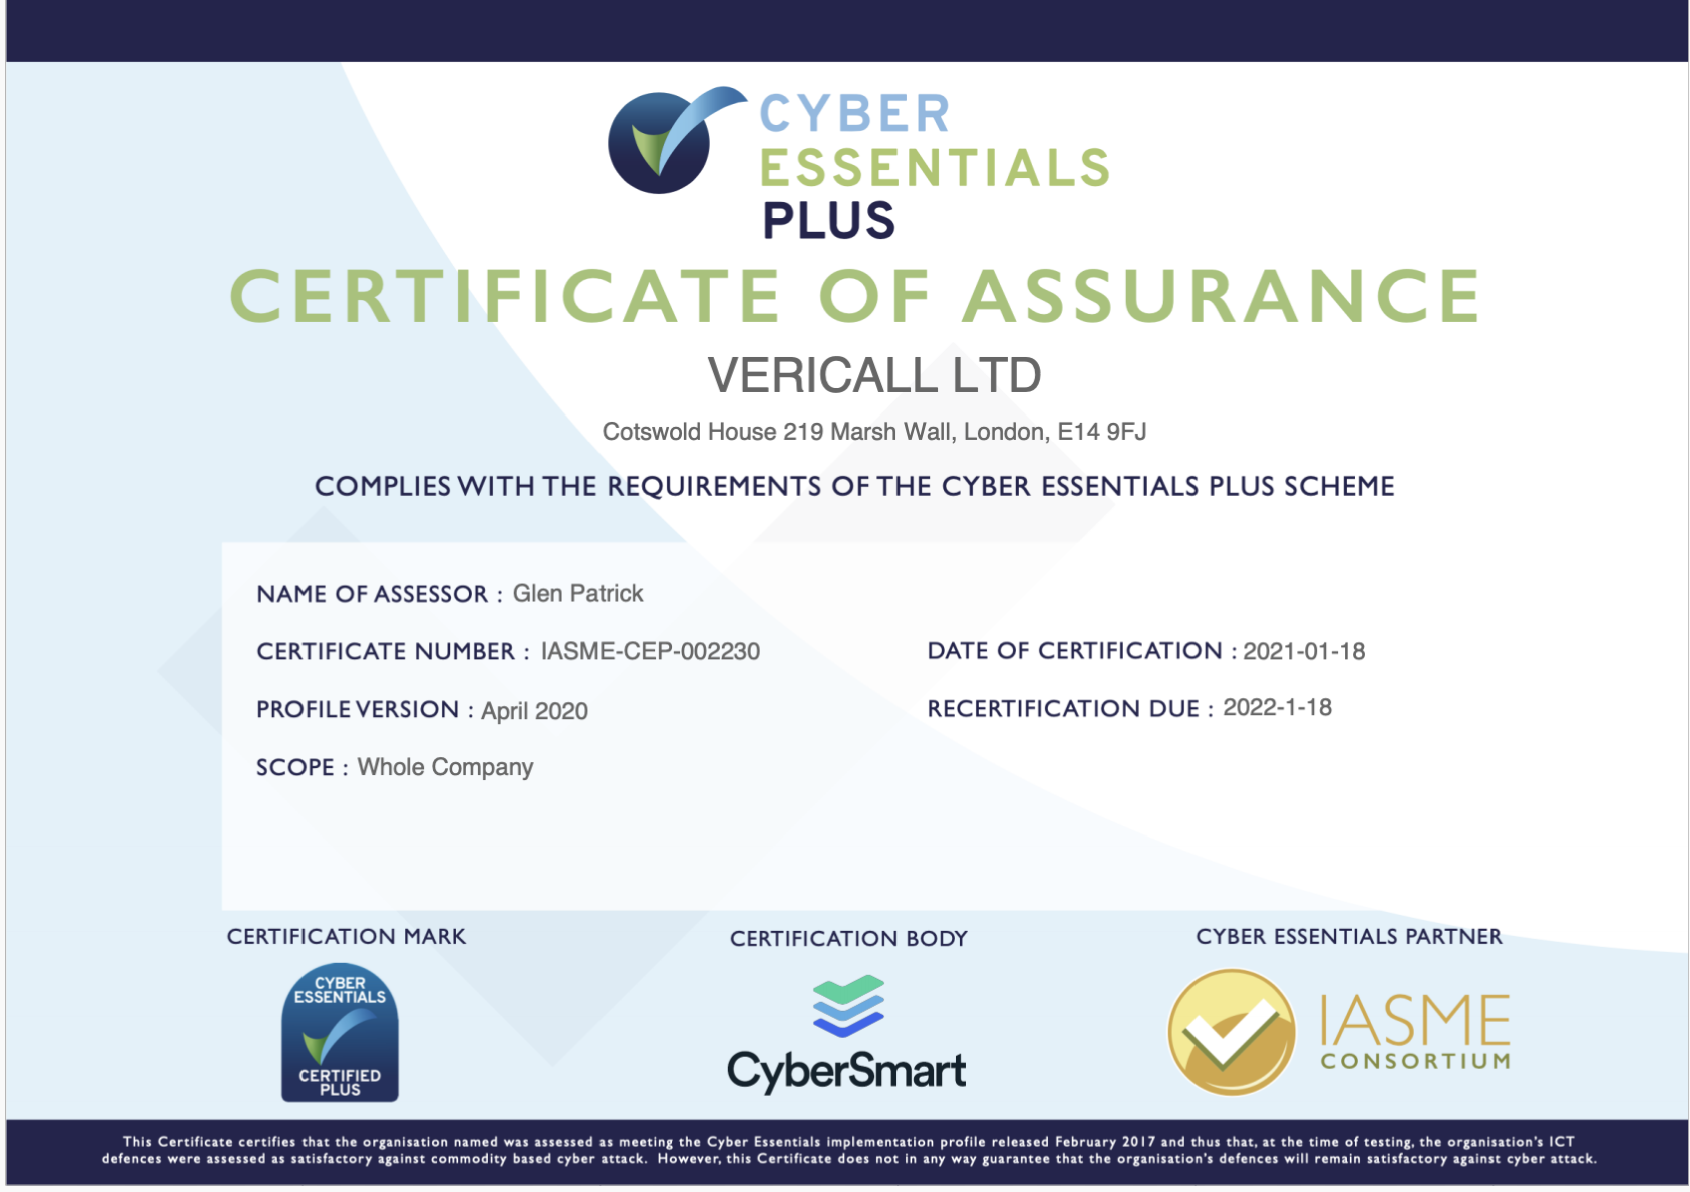 VeriCall is awarded Cyber Essentials Plus Certificate of Assurance